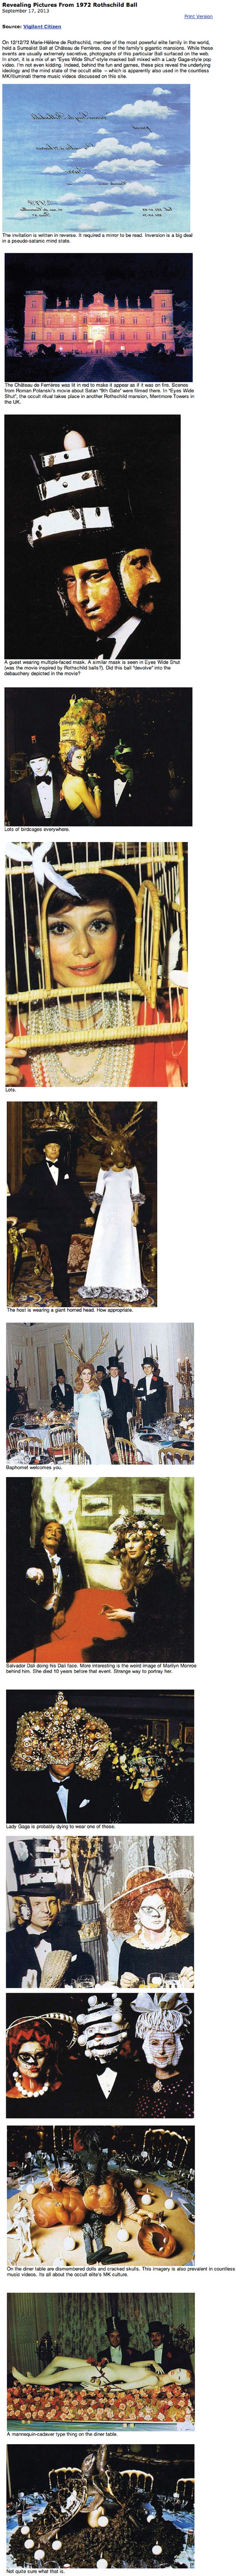 """1972 Rothschild party. Incredible amount of symbolism. These are the satanic Elite. MKUltra (birdcages), cannibalism & sacrifice symbolism (dolls/mannequins), eyes (Aliester Crowley called his god Satan """"the Eye""""...yes, the same eye on the back of the dollar bill), reptilian, Baphomet imagery. If this was 40 years ago just think how much sicker they are now. This was portrayed in the movie Eyes Wide Shut and director Stanley Kubrick was murdered for exposing it."""